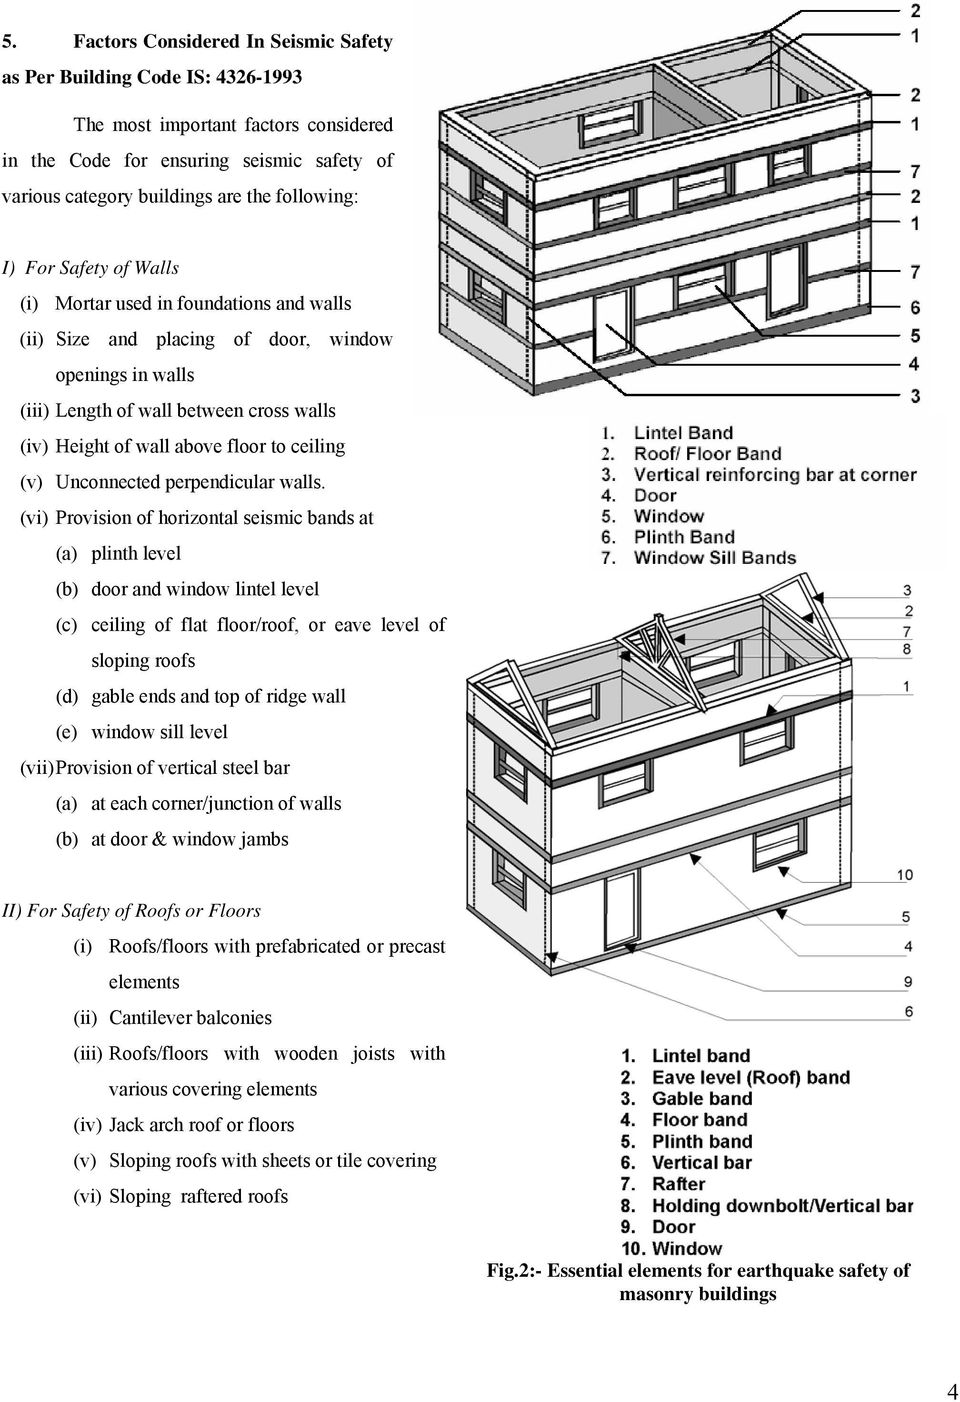 SEISMIC ASSESSMENT OF BRICK MASONRY BUILDING Situated